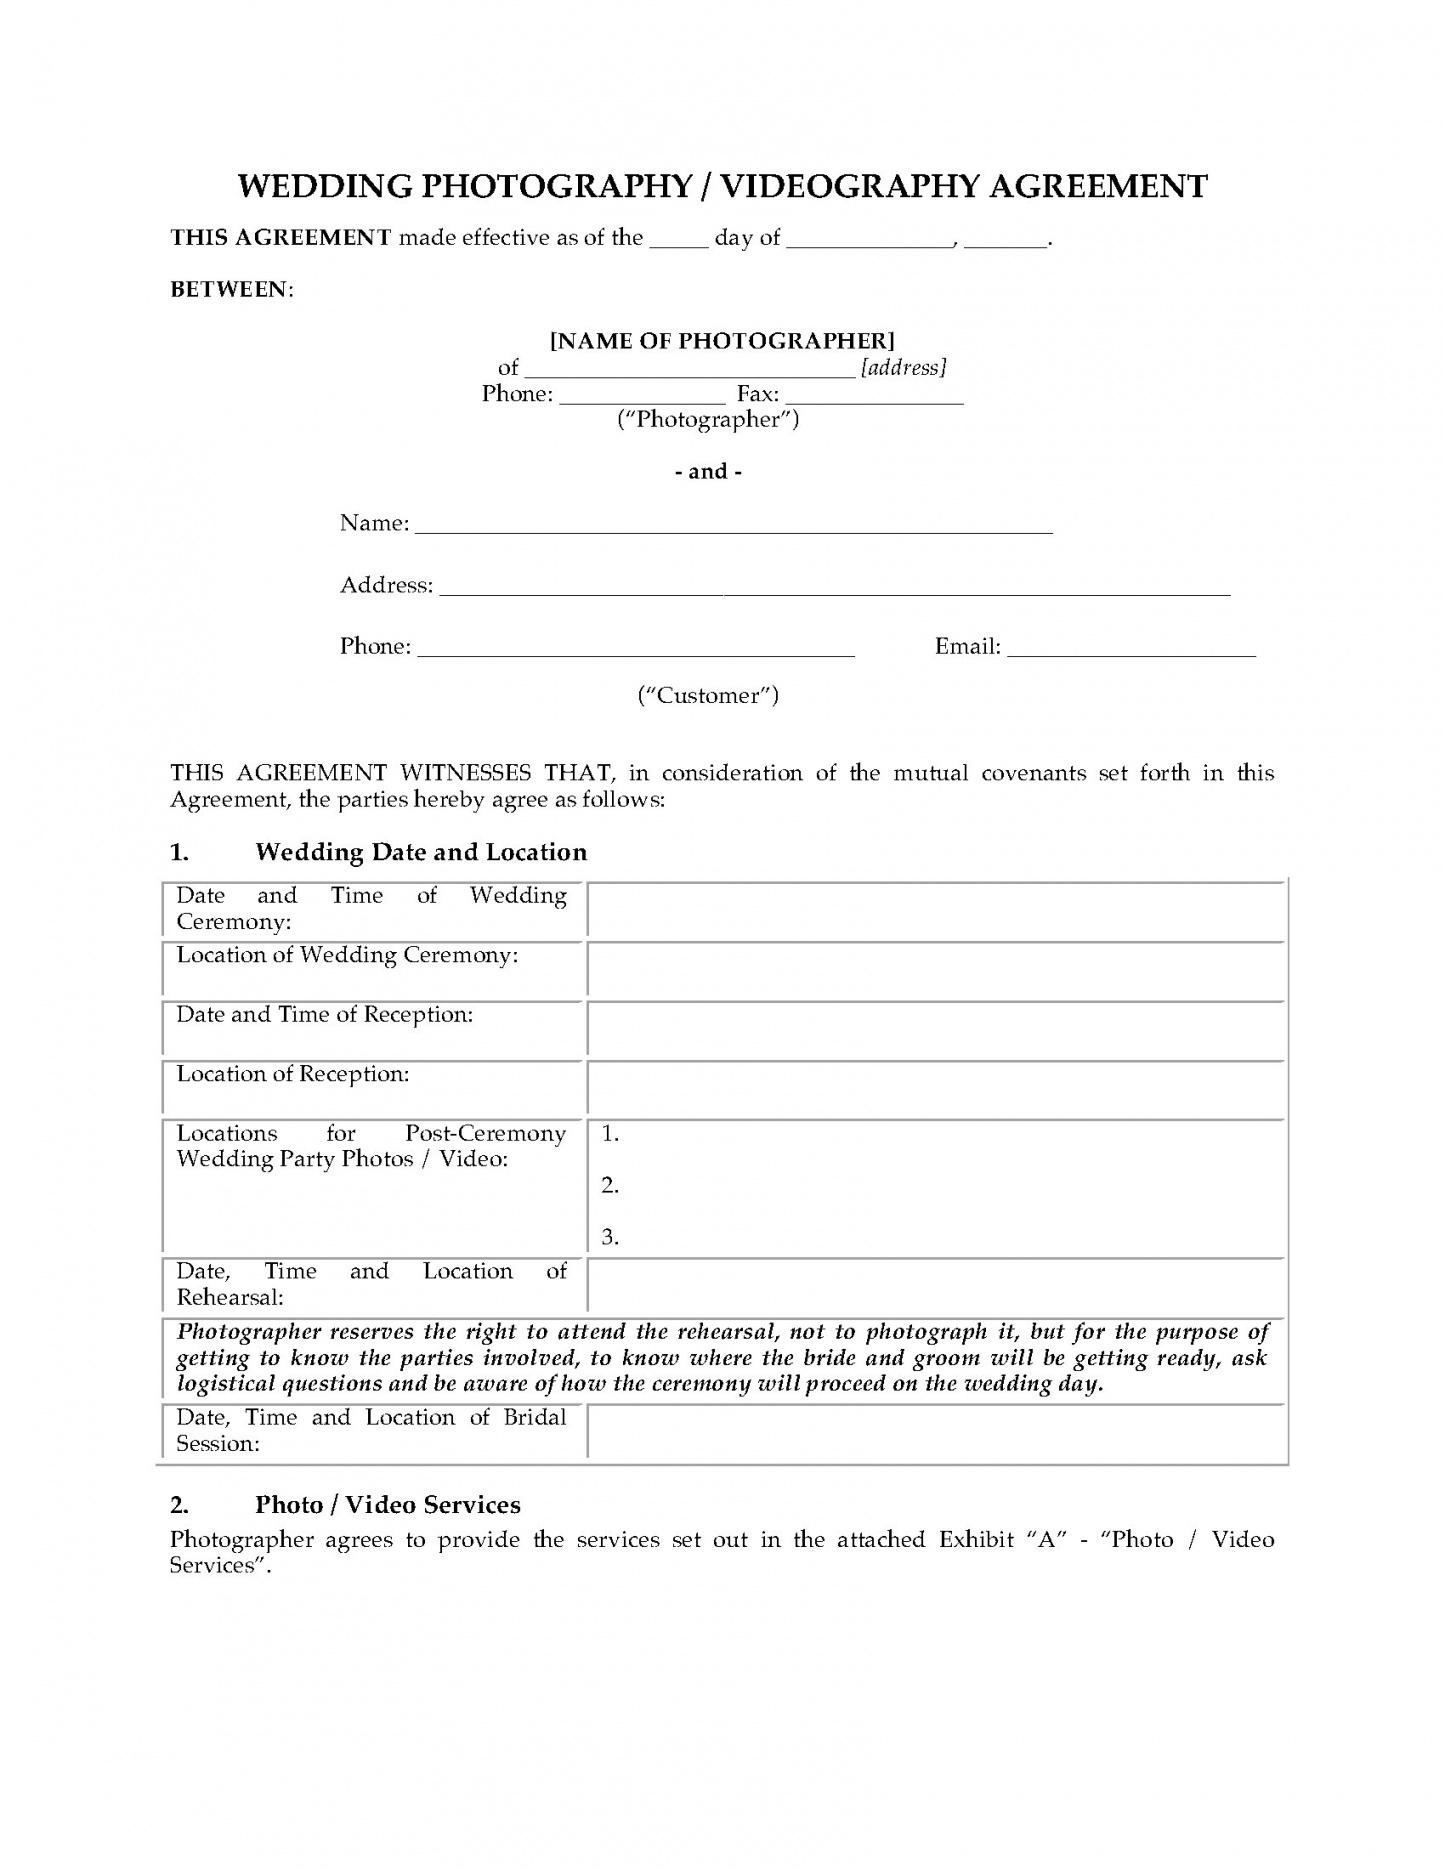 our wedding photography and videography contract  legal forms and video photography contract template